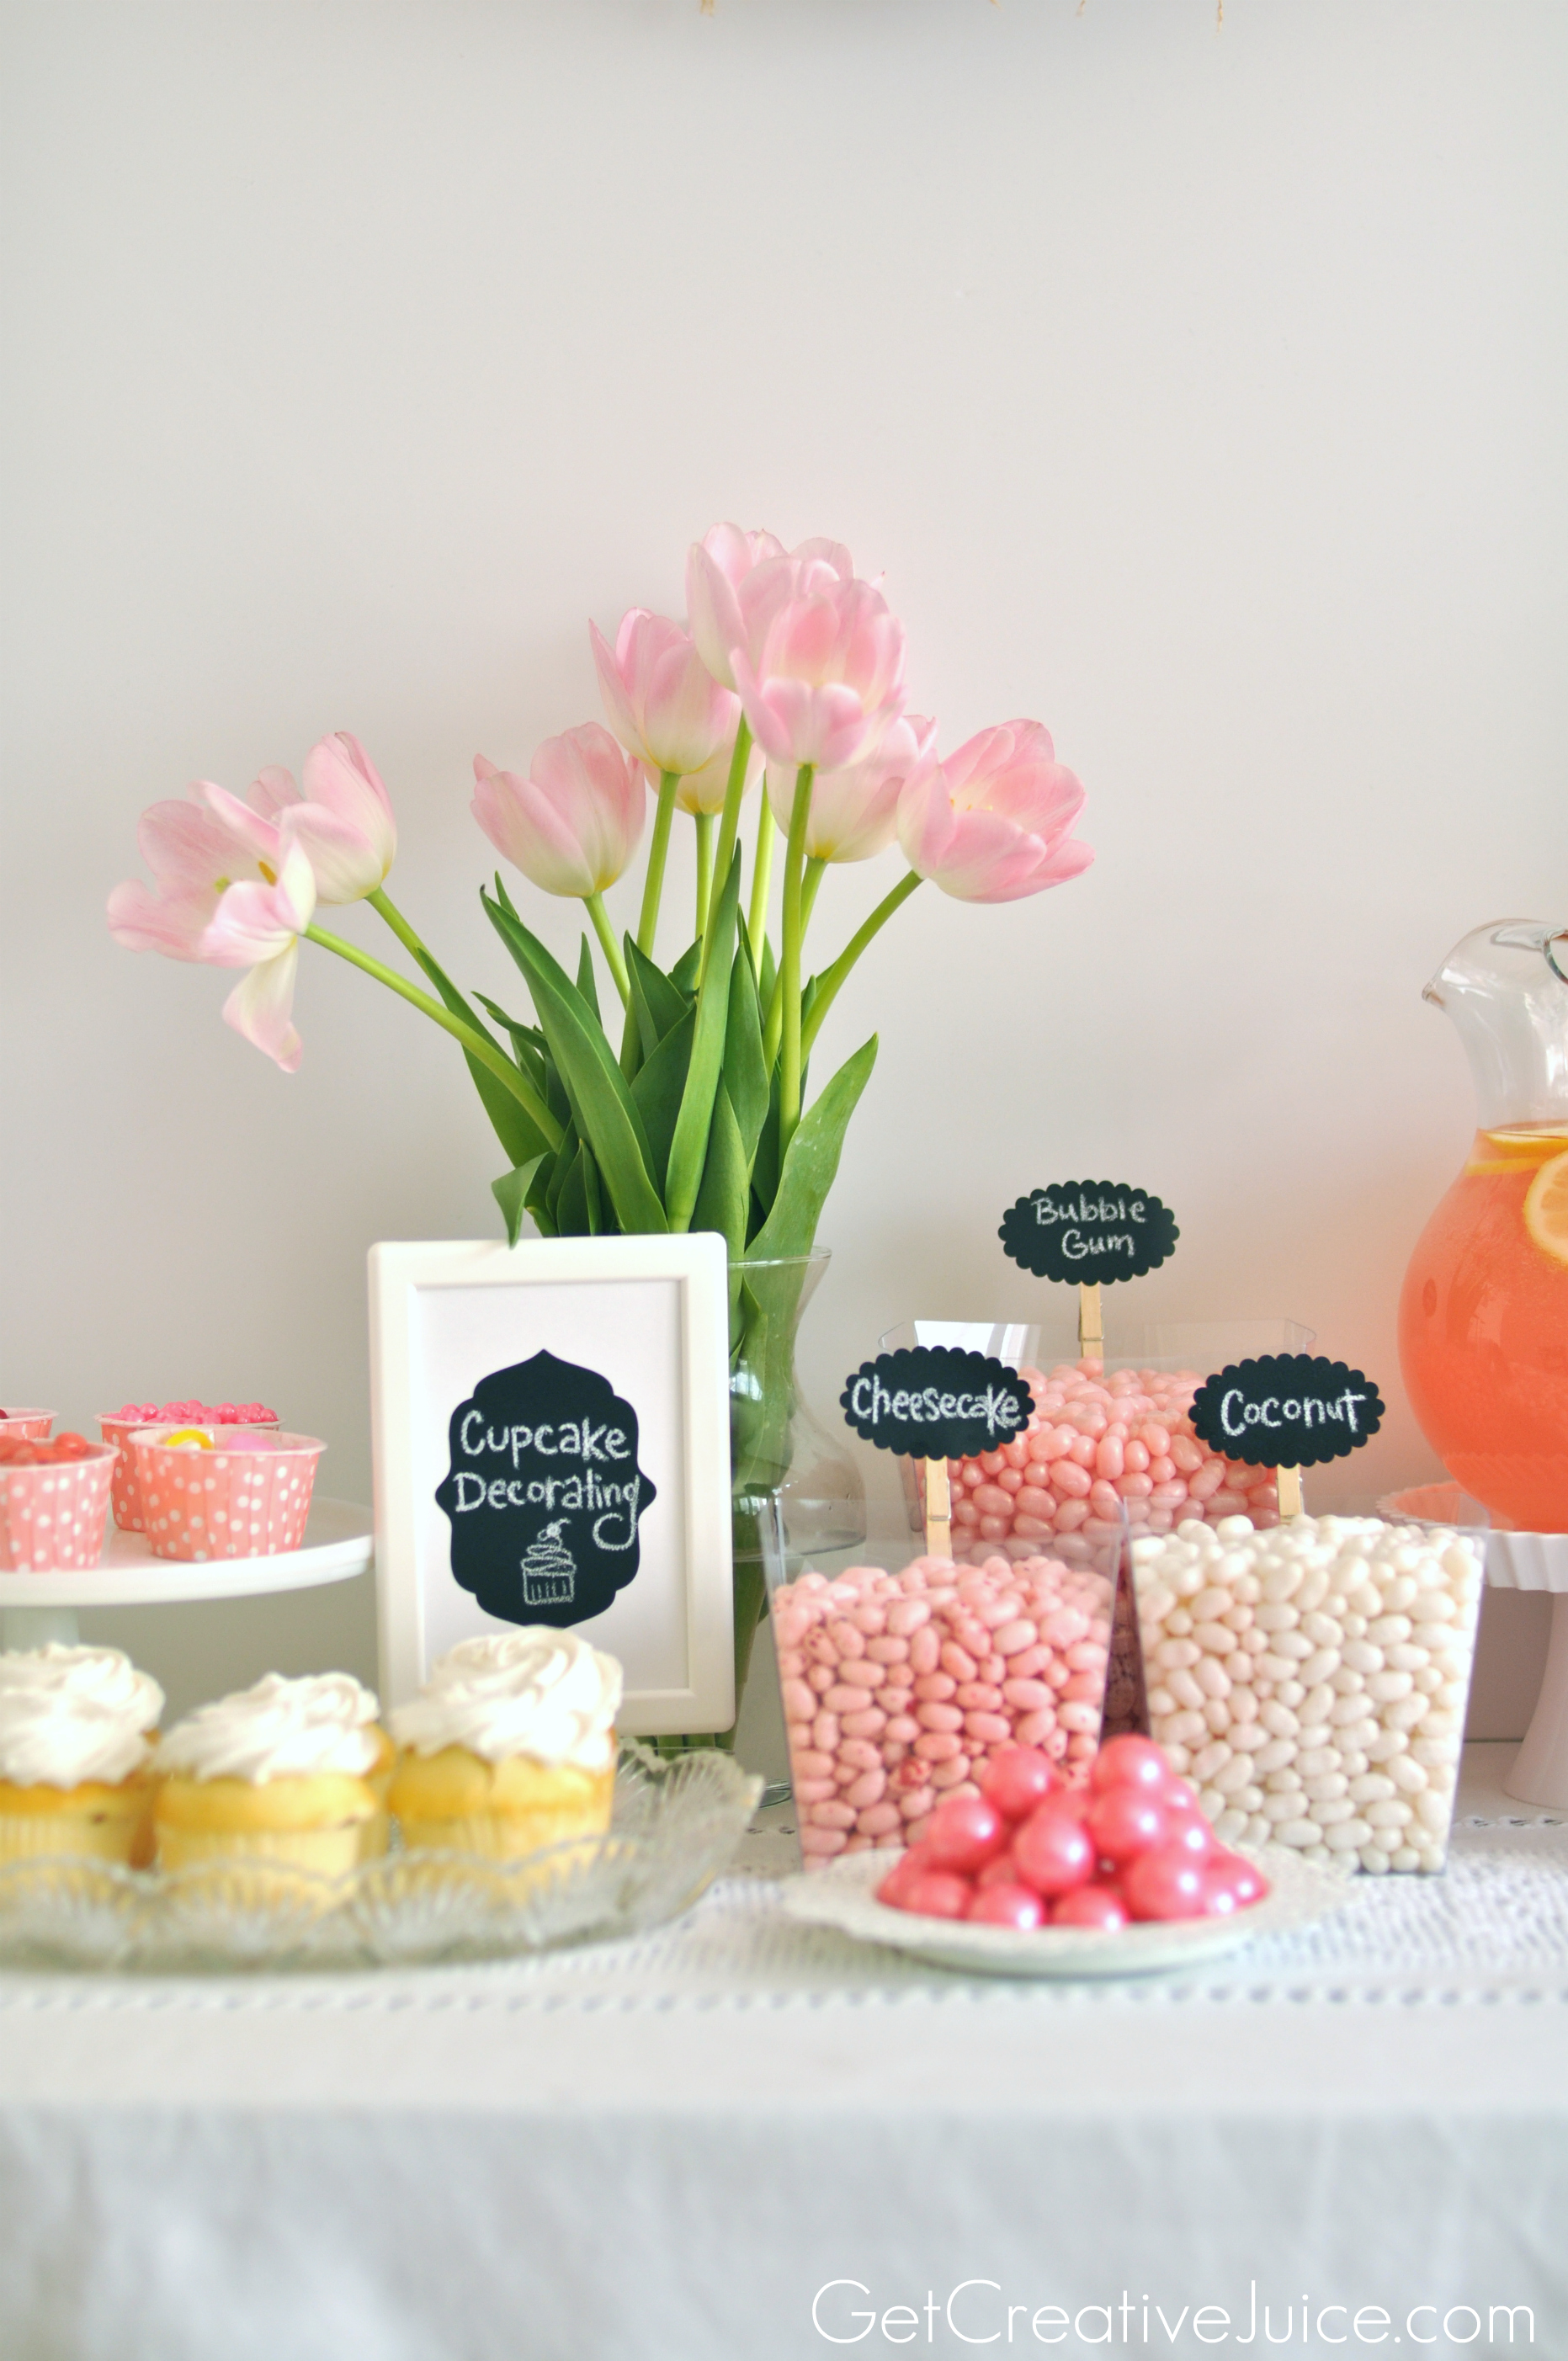 Cupcake Decorating Ideas For Birthday Party : Girly Pink Cupcake Decorating Party! - Creative Juice